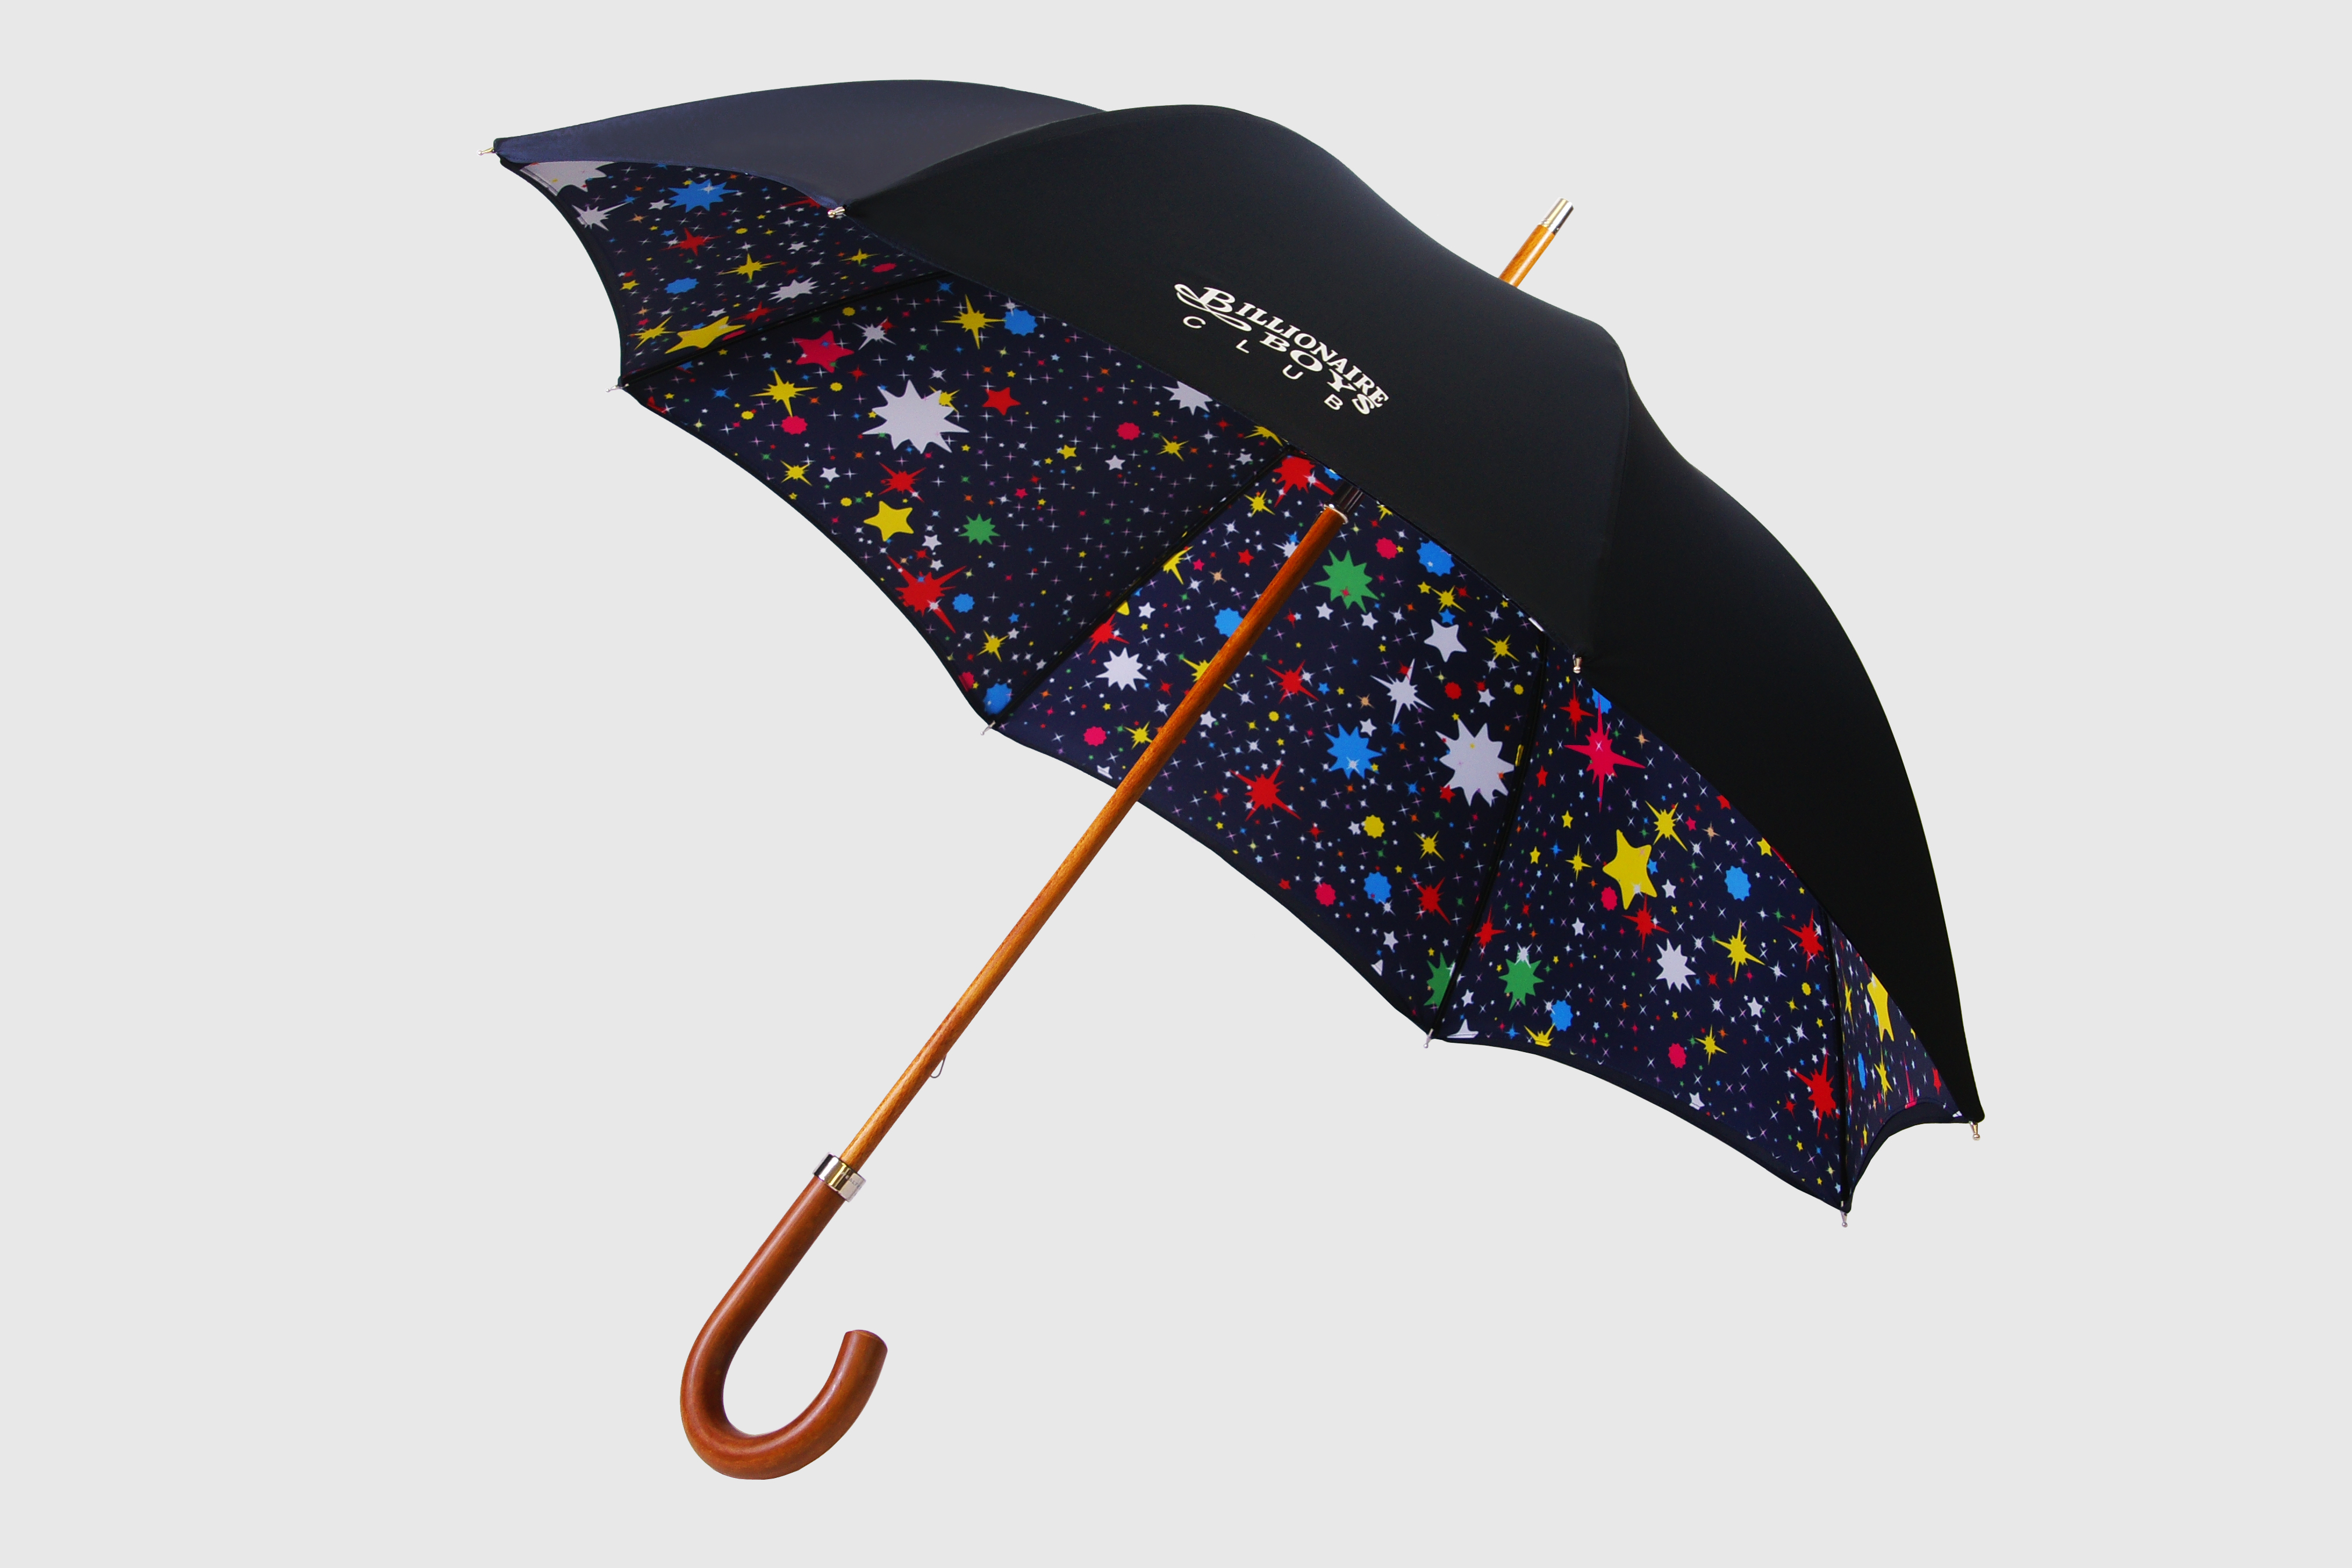 London Undercover x Billionaire Boys Club Umbrella